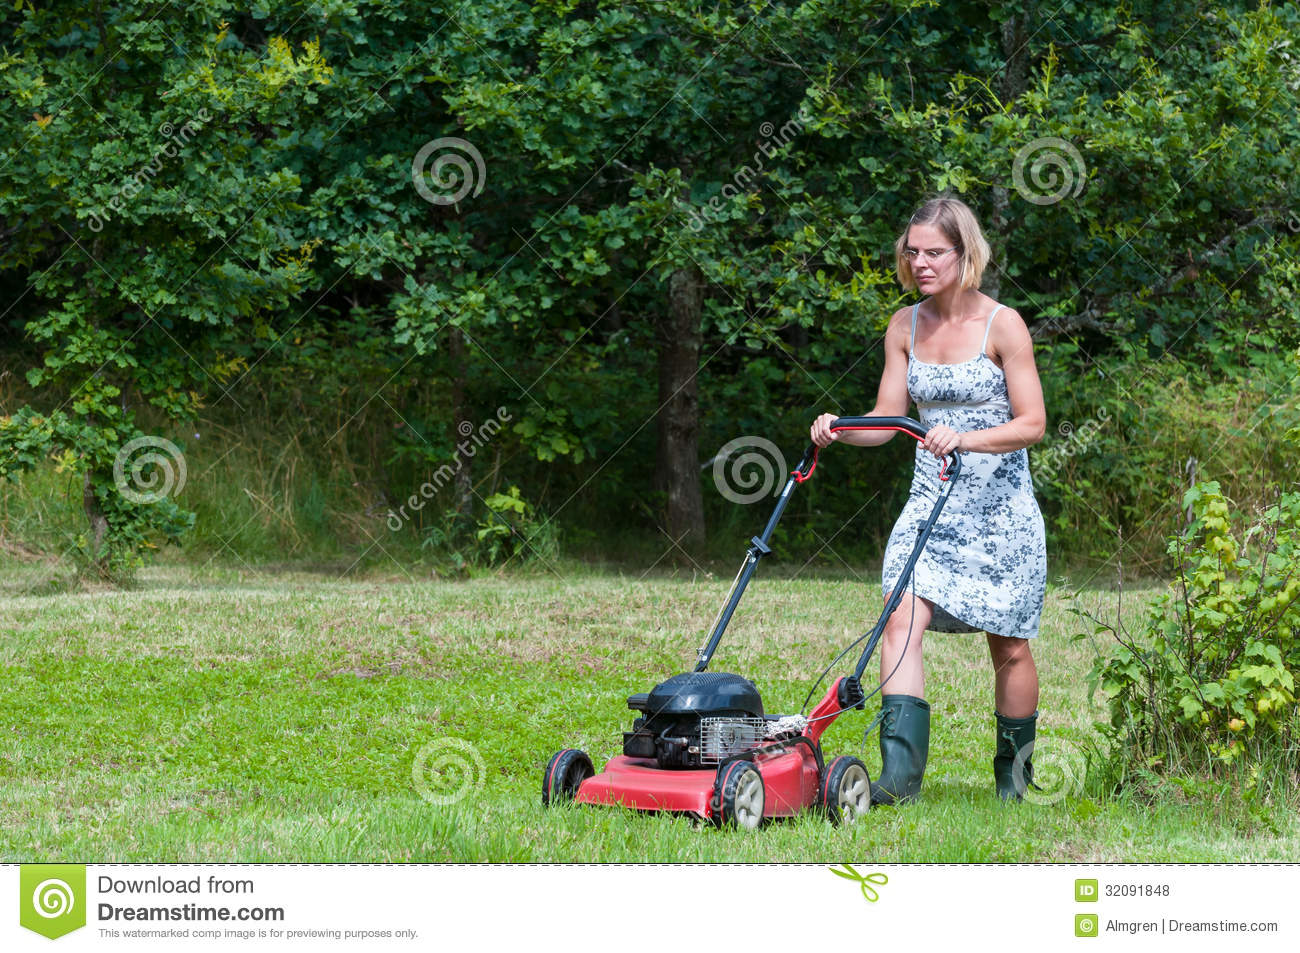 Mowing Grass Royalty Free Stock Photos - Image: 32091848